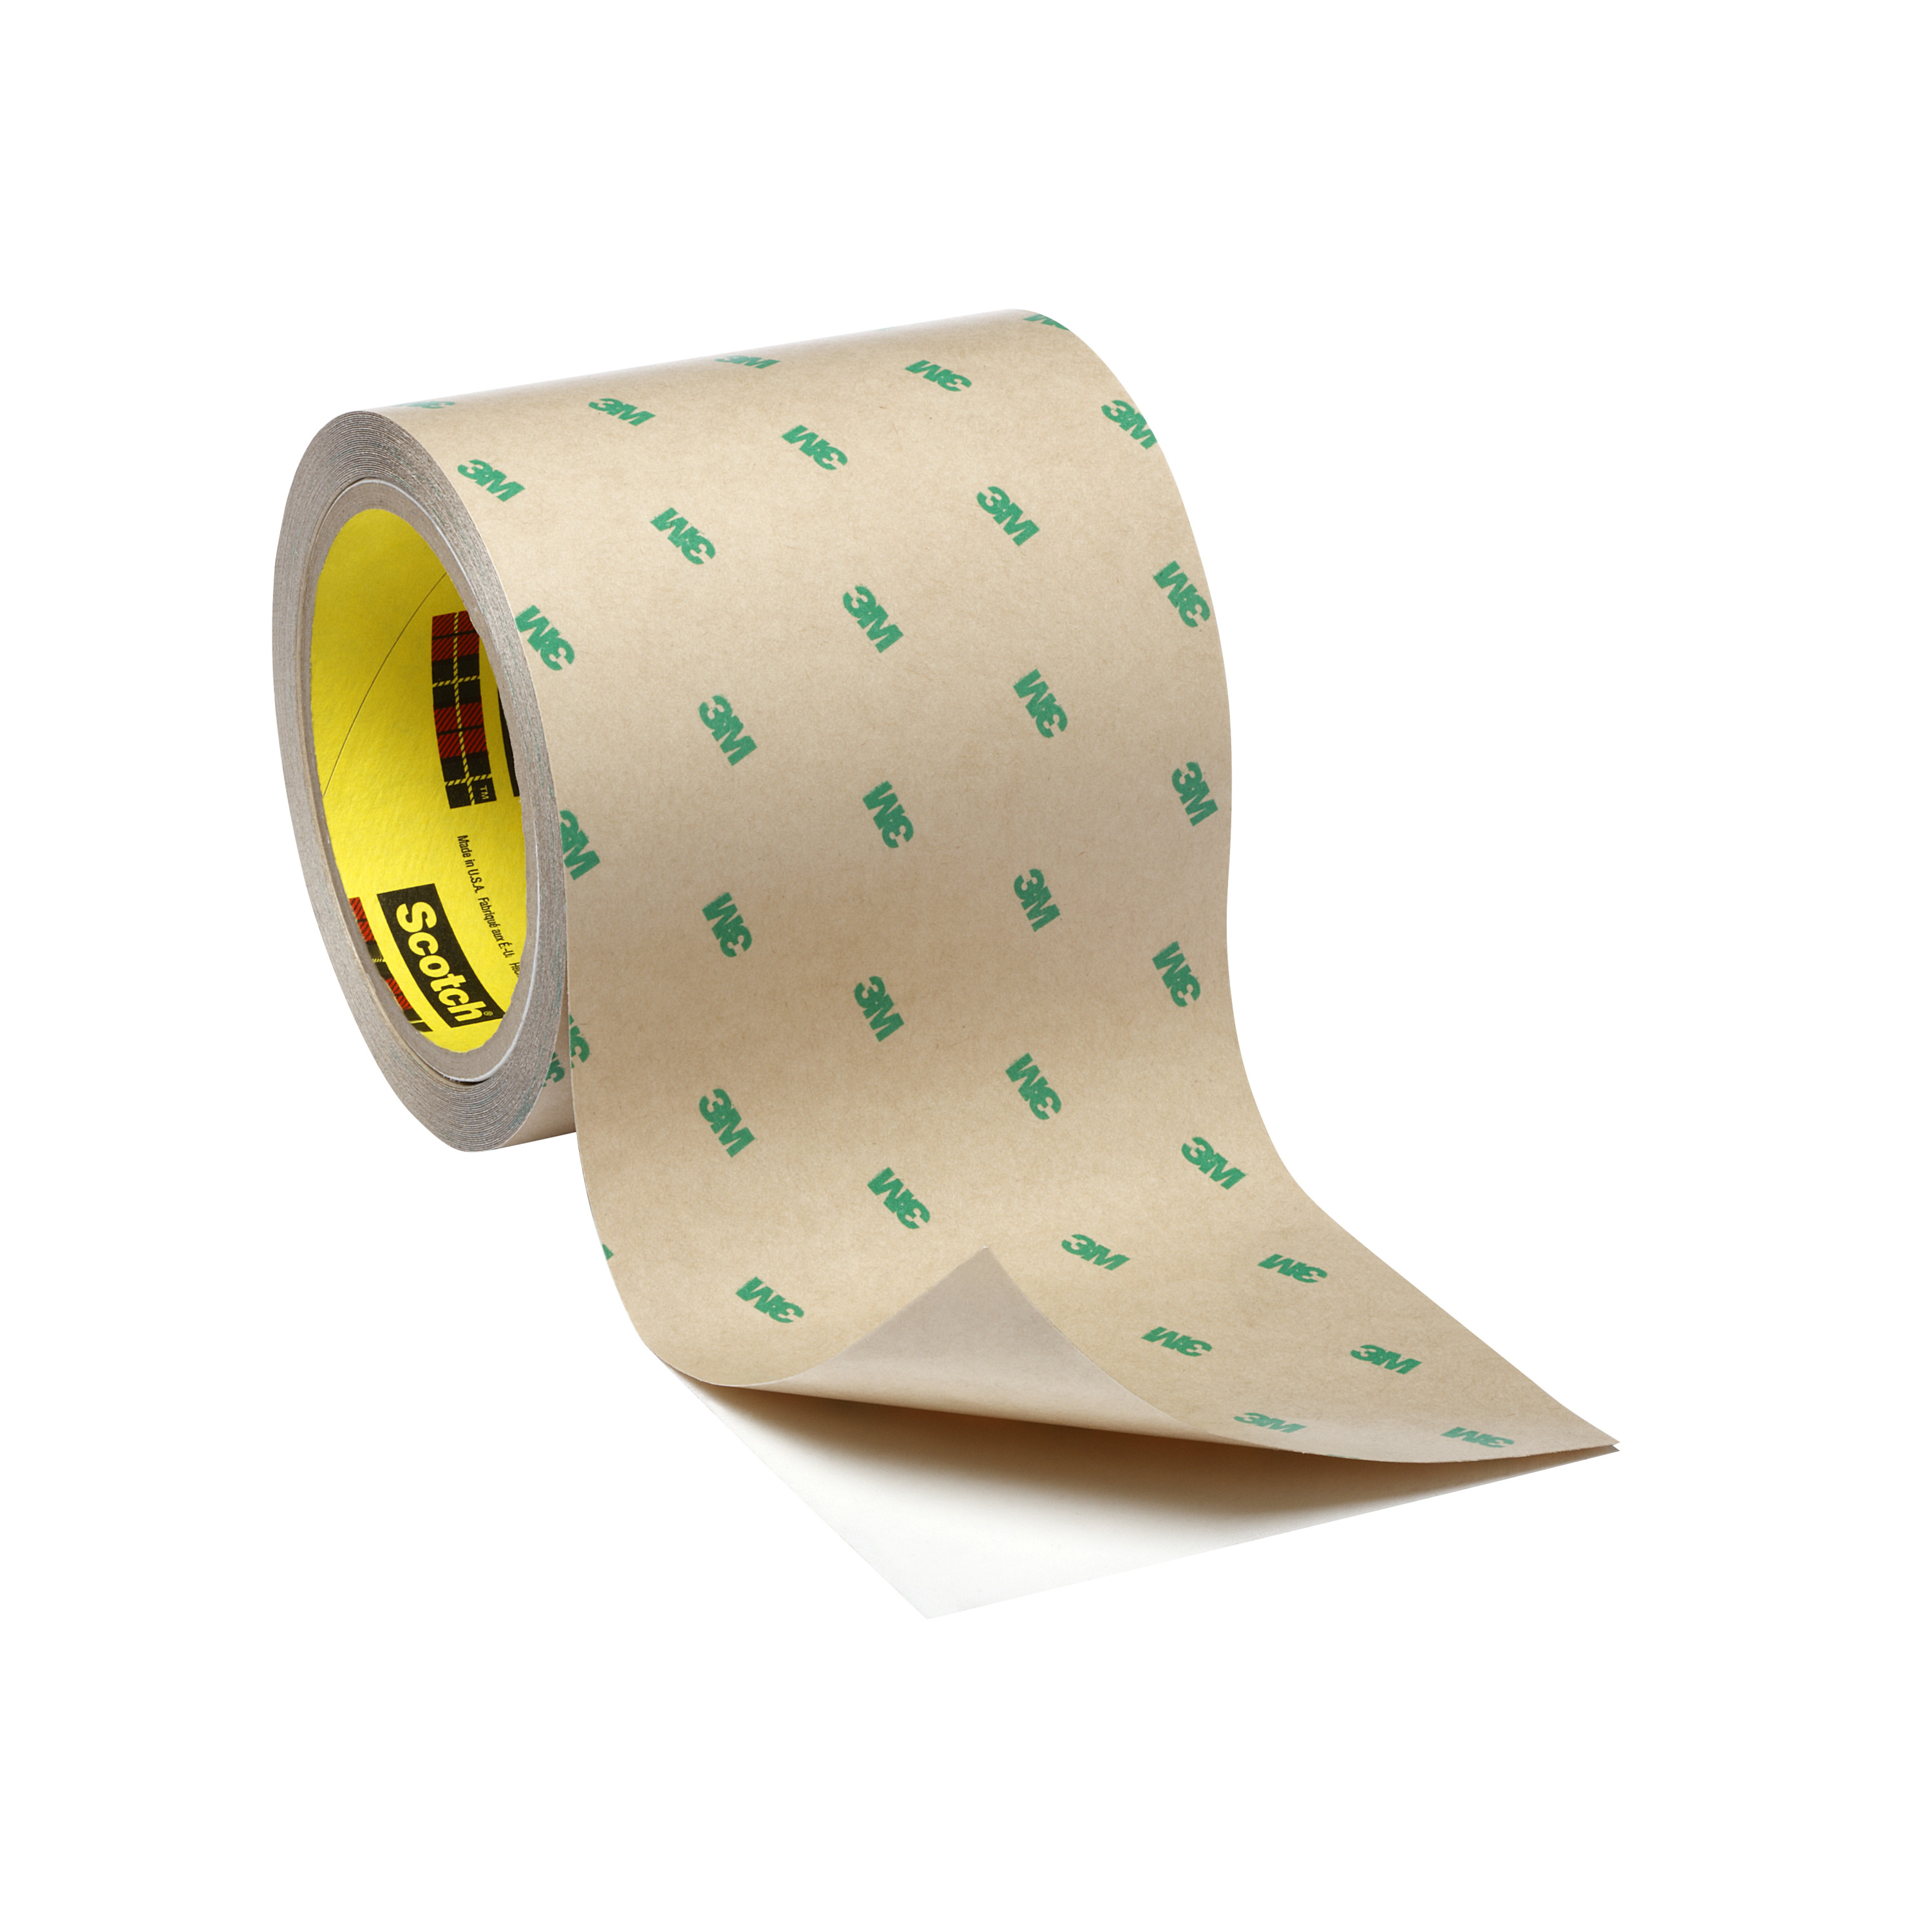 3M™ Double Coated Tape 9690, Clear, 1 in x 60 yd, 5.5 mil, 9 rolls per case